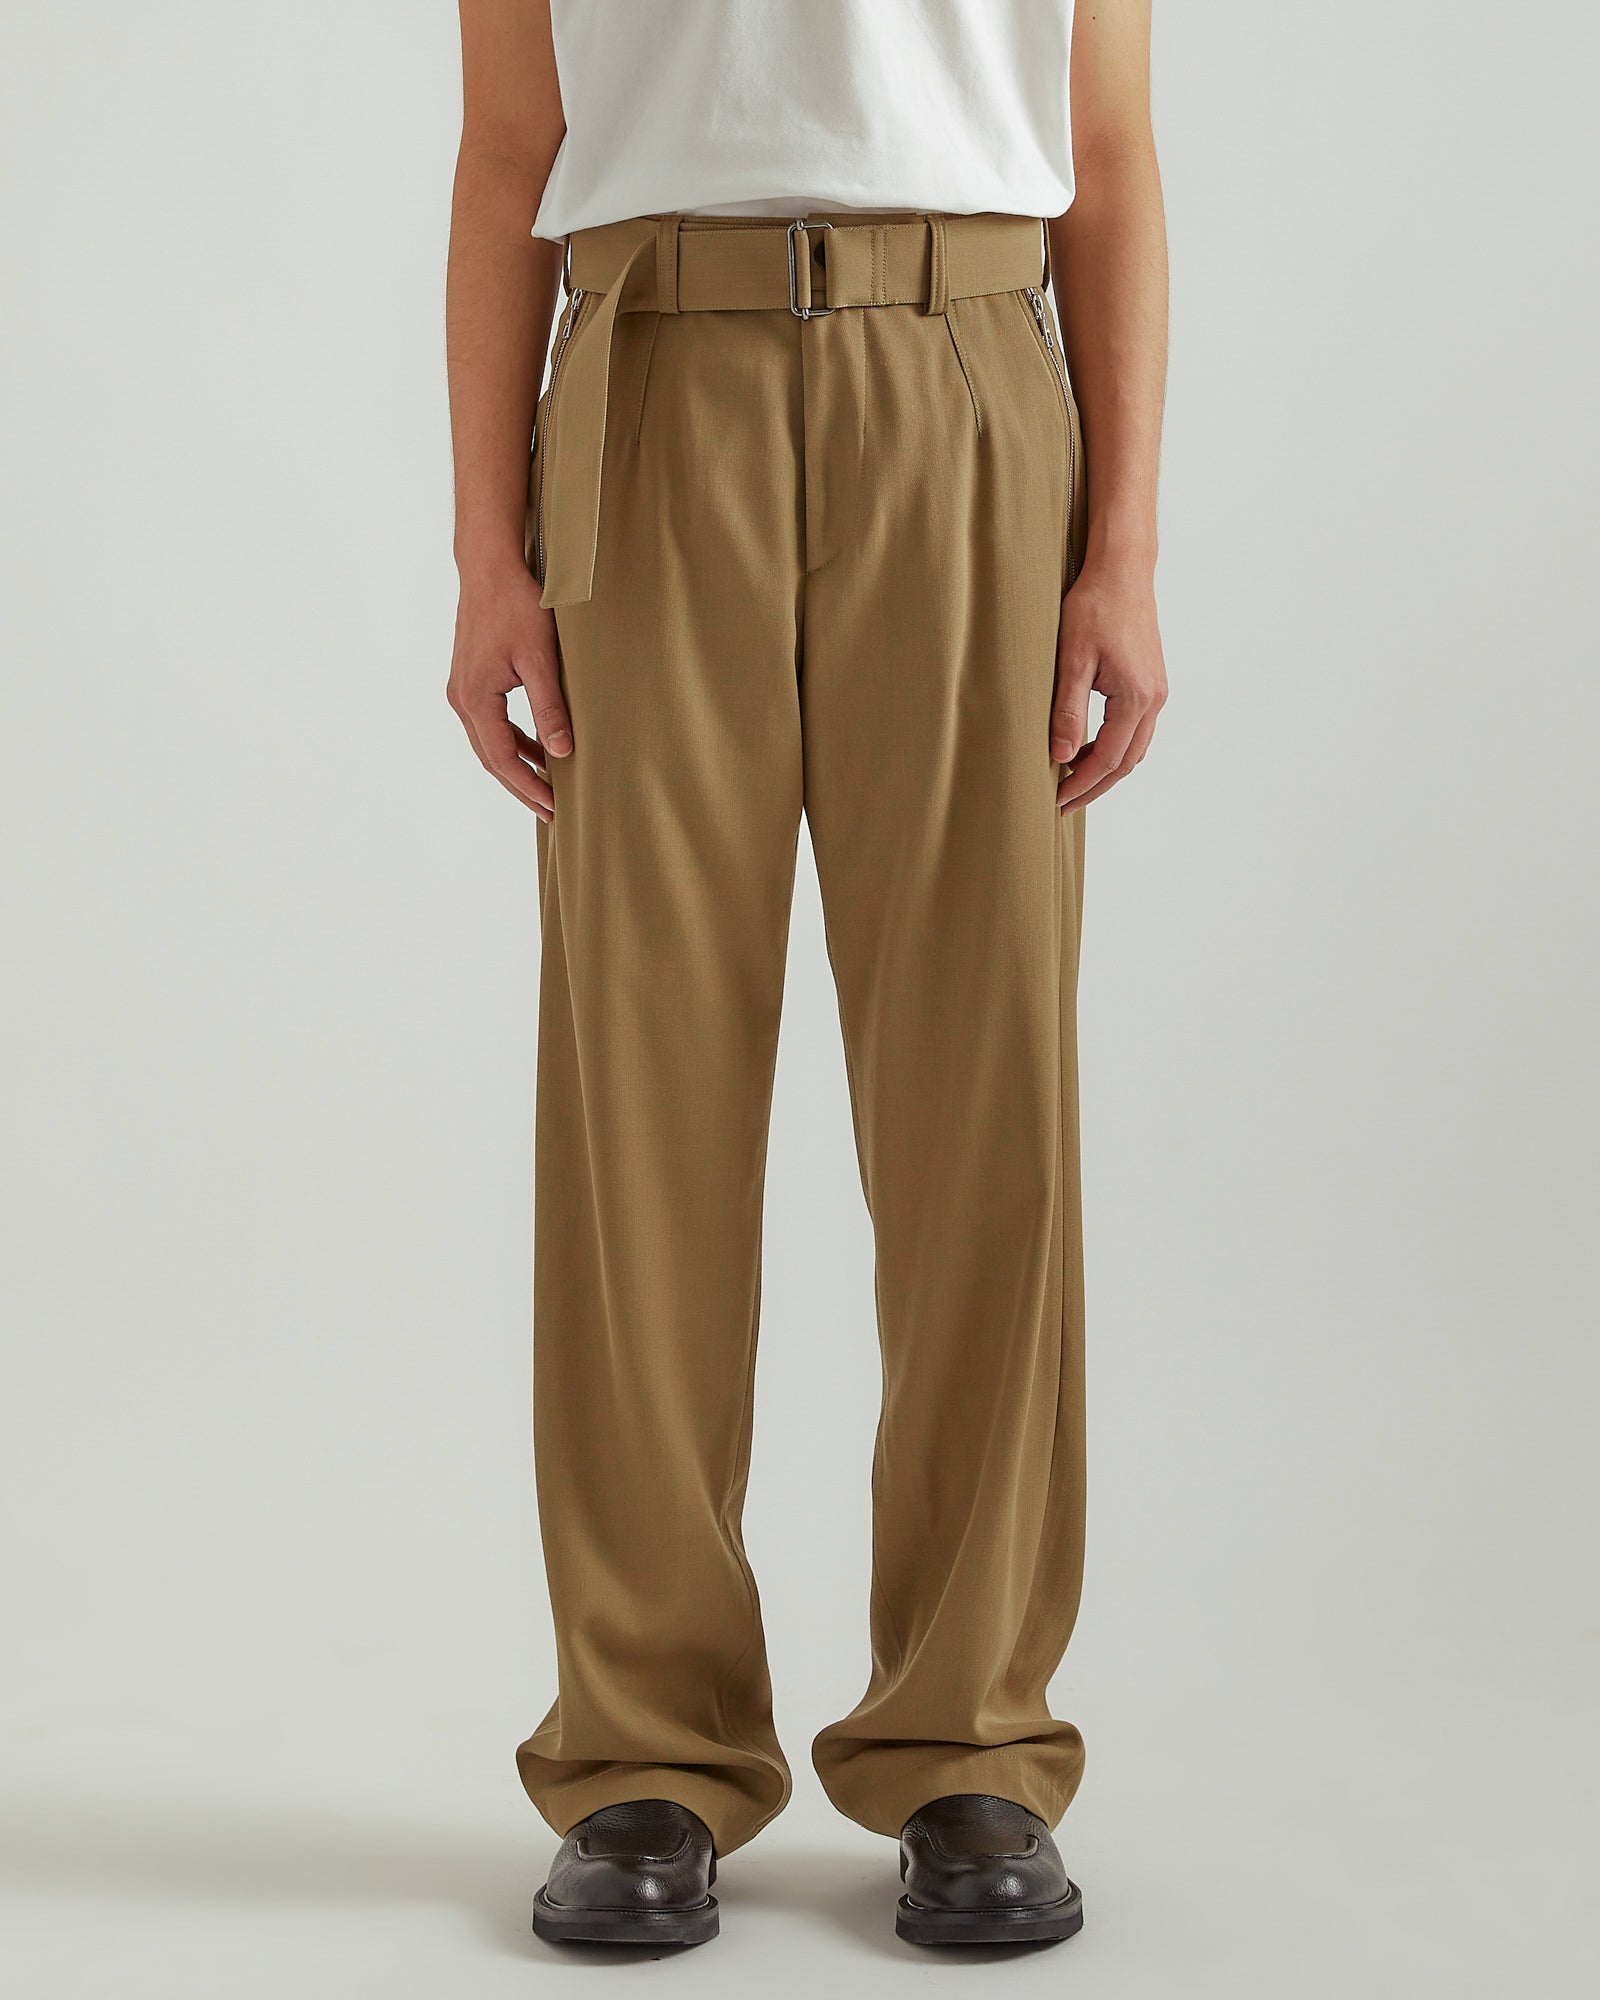 Penson Pants in Sand